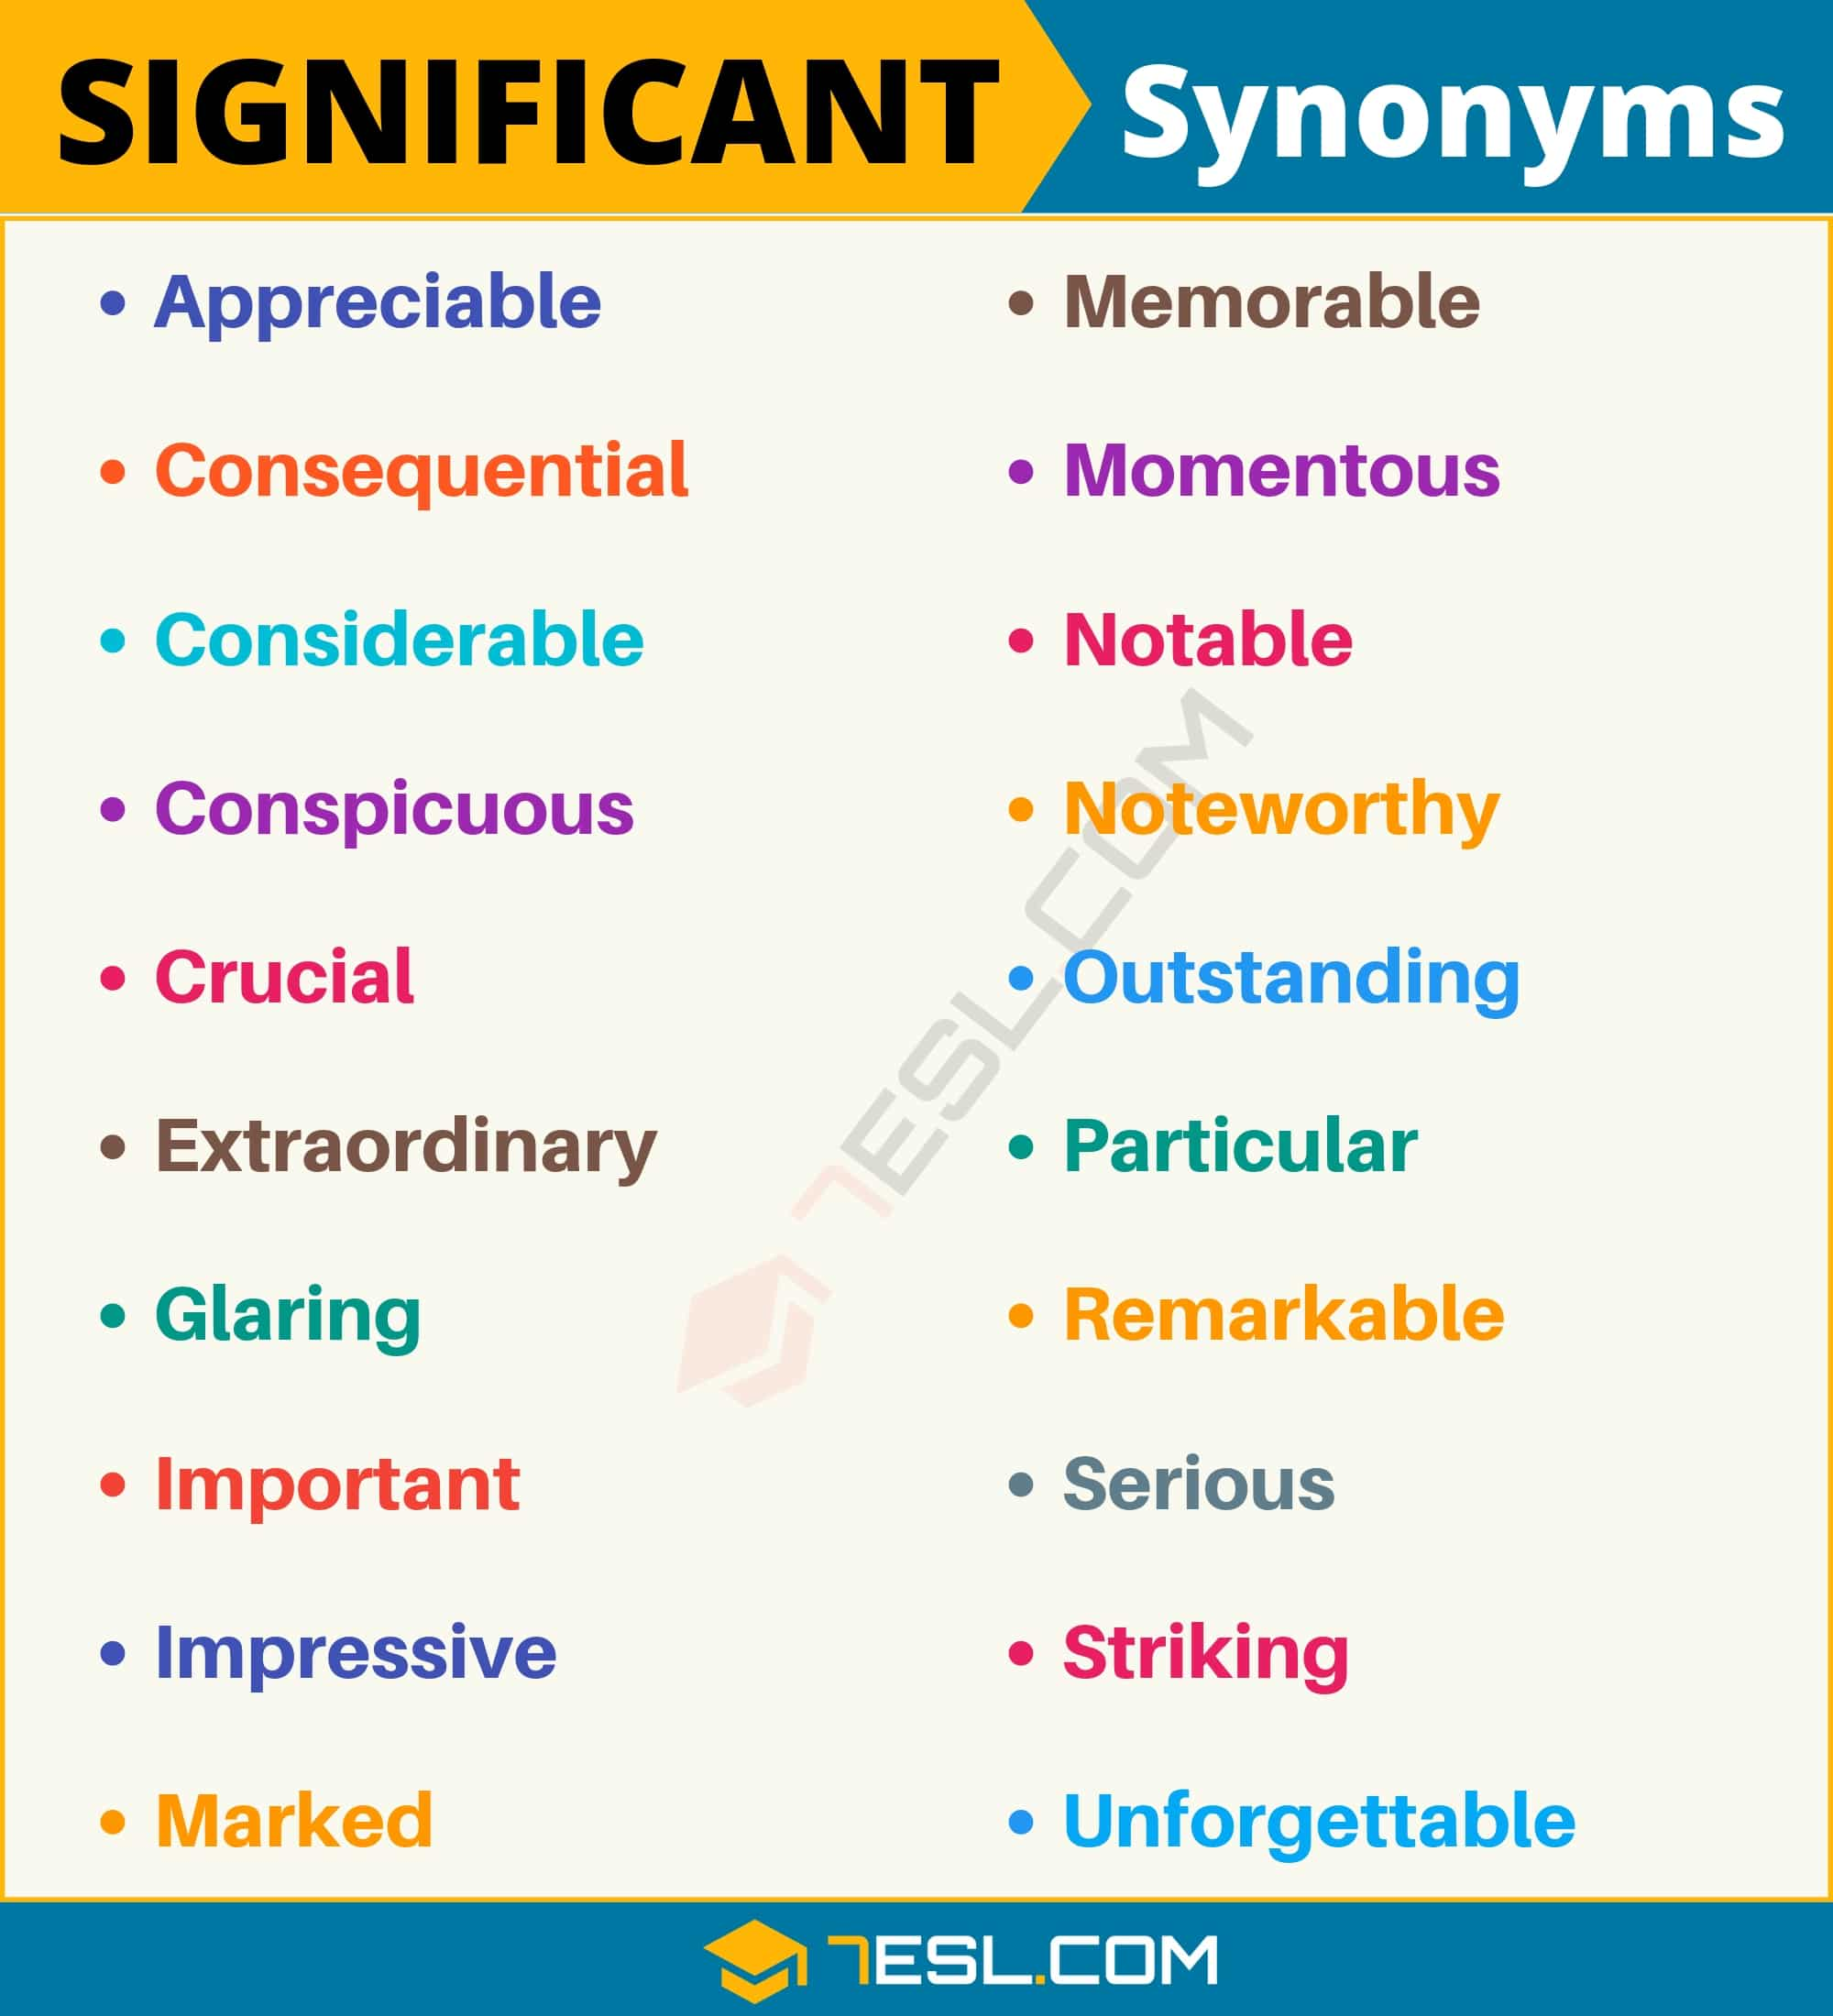 SIGNIFICANT Synonym: 20 Synonyms for Significant with Useful Examples